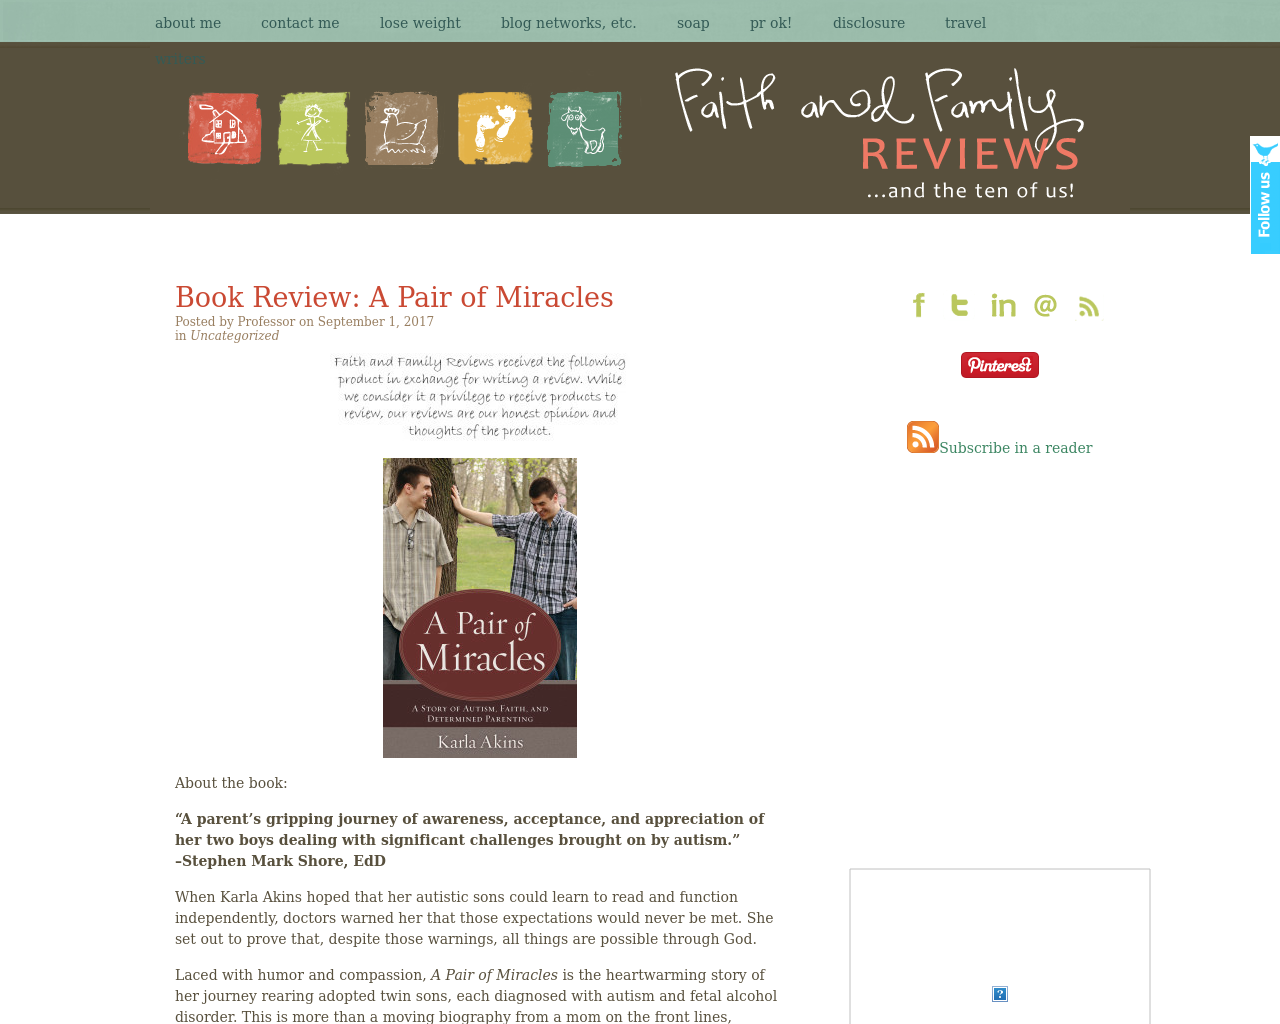 Faithandfamilyreviews-Advertising-Reviews-Pricing